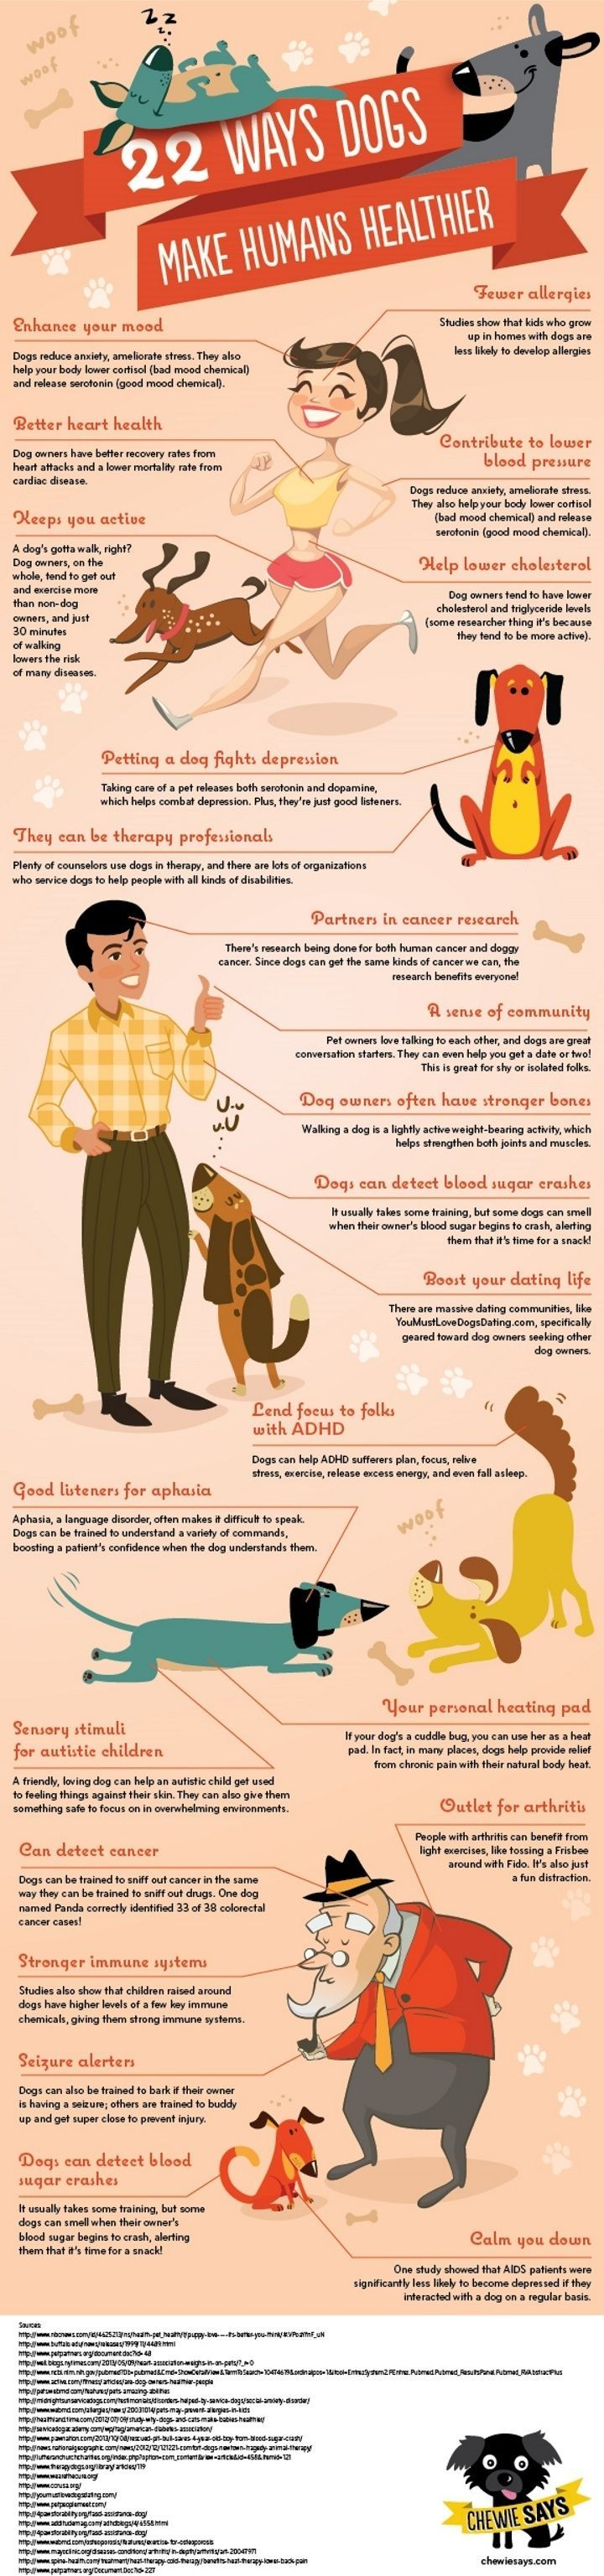 """The good pups at Cheewie Says decided to compile all the ways dogs help humans' health and create an adorable infographic about it! Here are 22 ways dogs can make humans healthier that you can point to (literally if you print this out) when cat people ask you, """"So WHY did you get a dog?"""""""